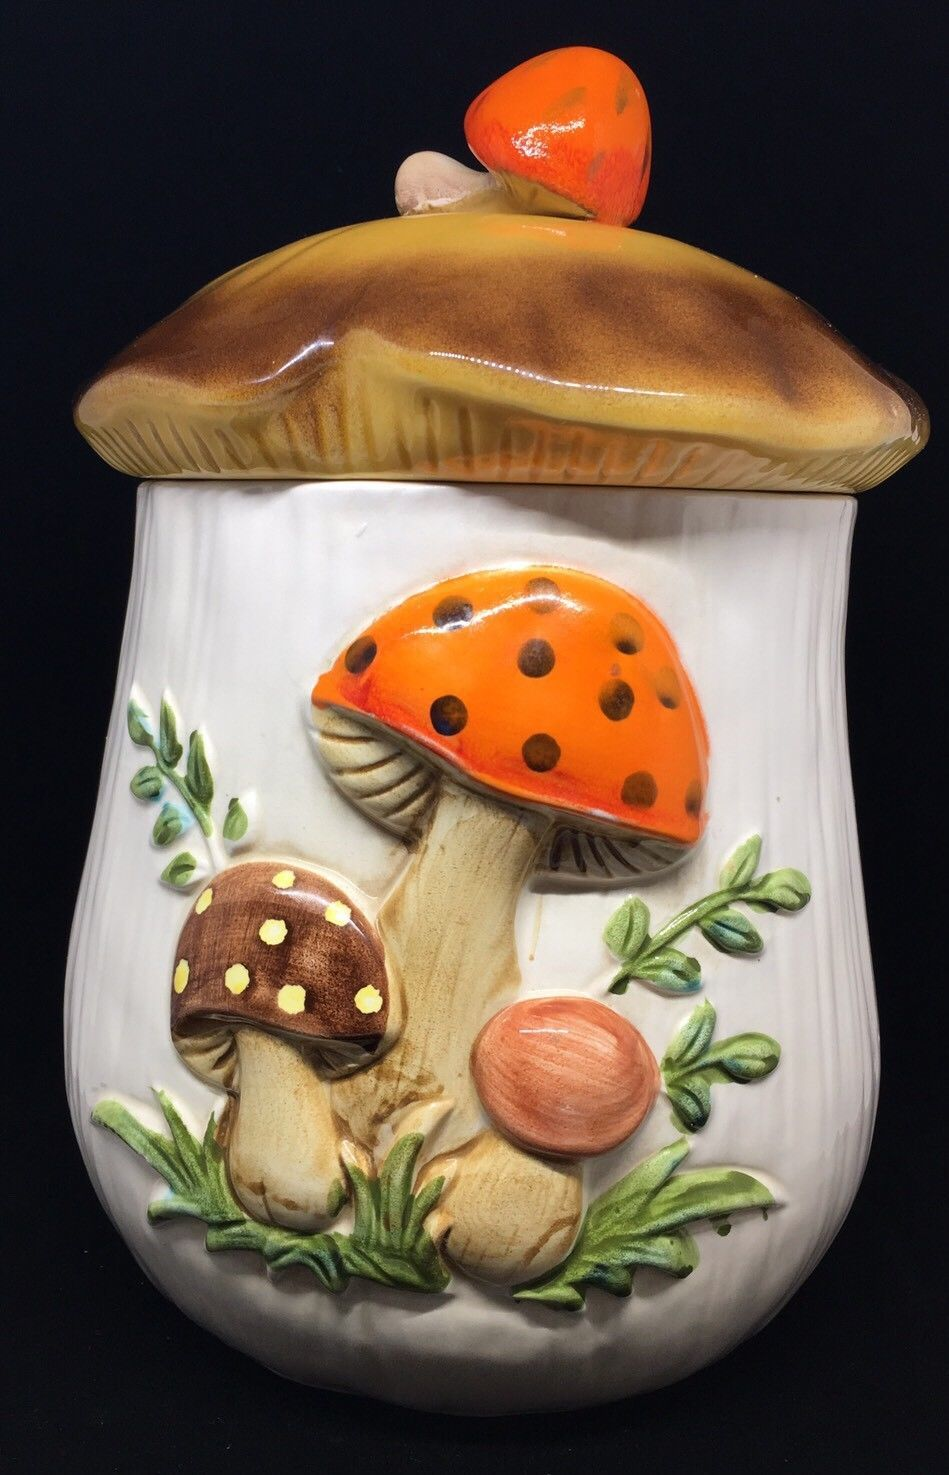 Primary image for Retro 1970s Sears Merry Mushroom Cookie Jar or Large Ceramic Canister with Lid